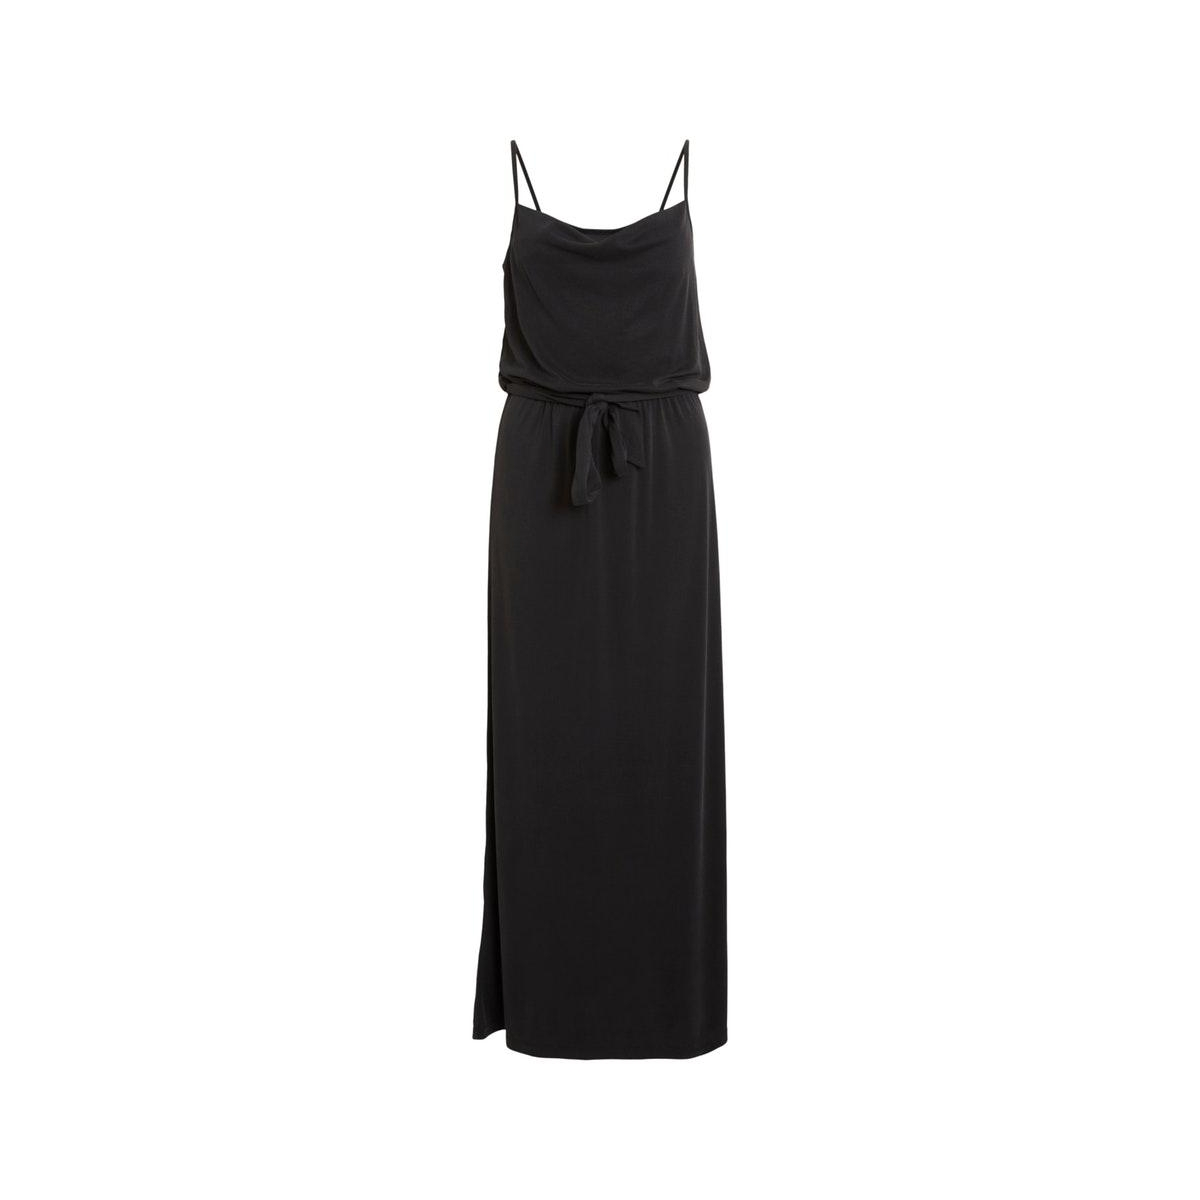 objkai singlet maxi dress 109 23032694 object jurk black